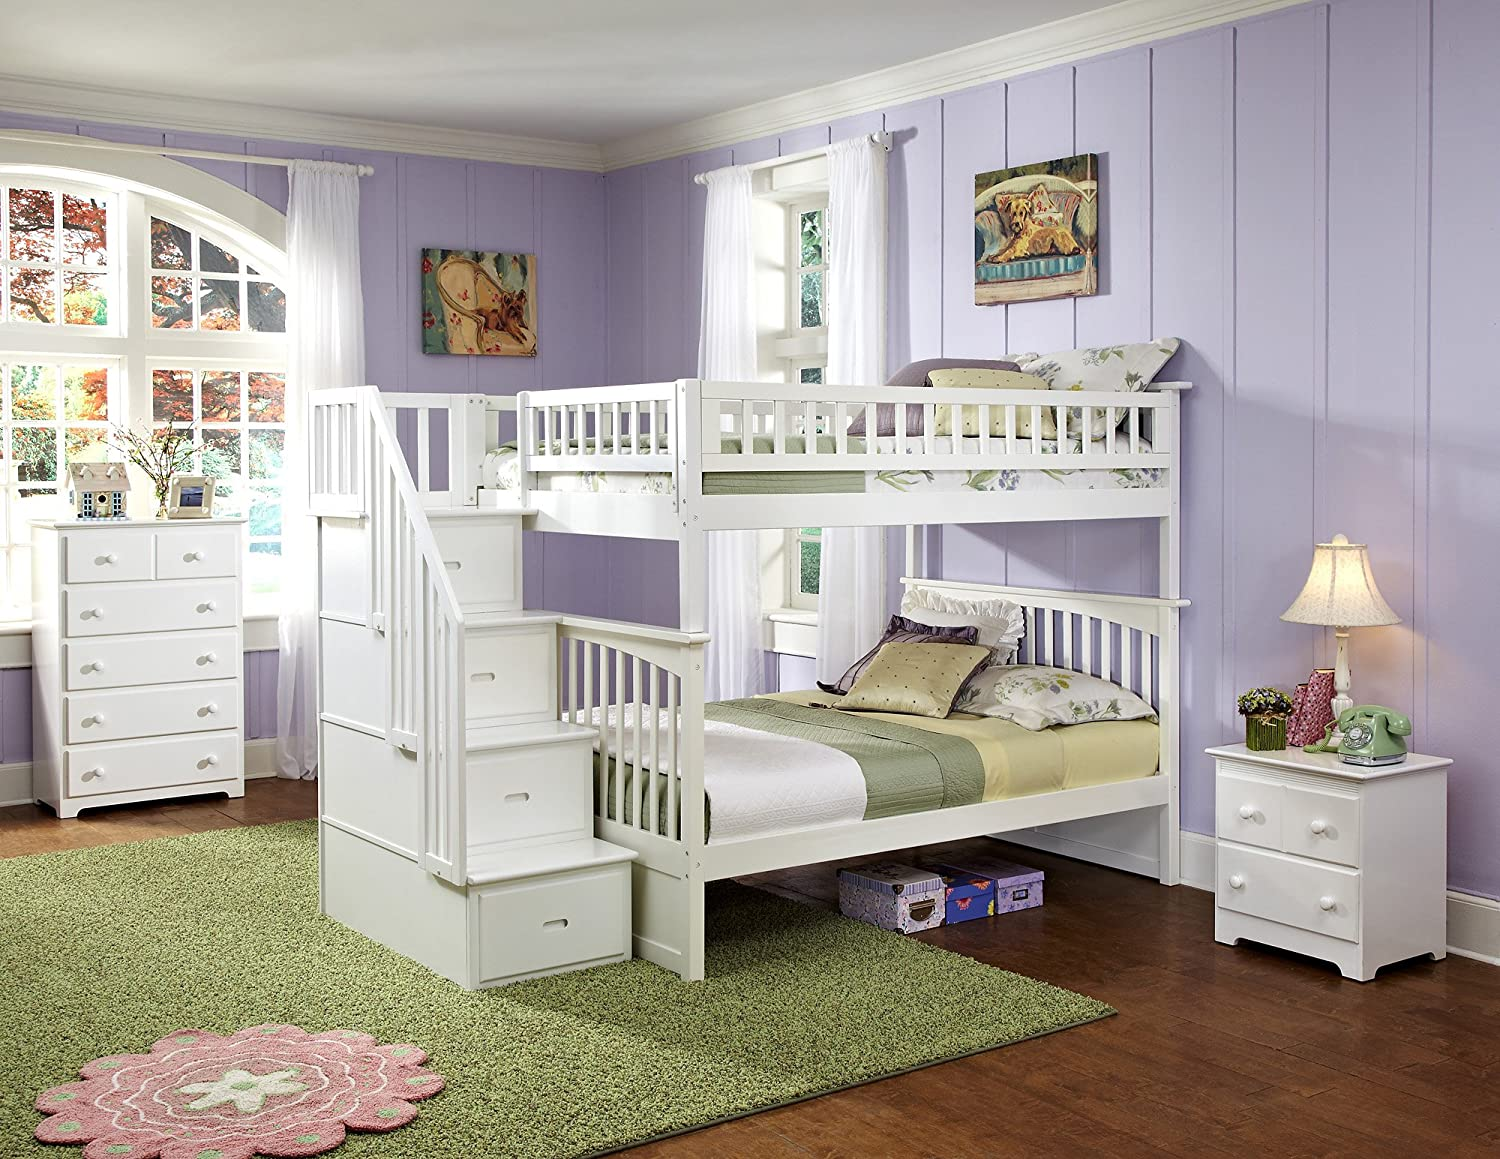 Amazon.com: Columbia Staircase Bunk Bed, Full Over Full, White: Kitchen &  Dining - Amazon.com: Columbia Staircase Bunk Bed, Full Over Full, White